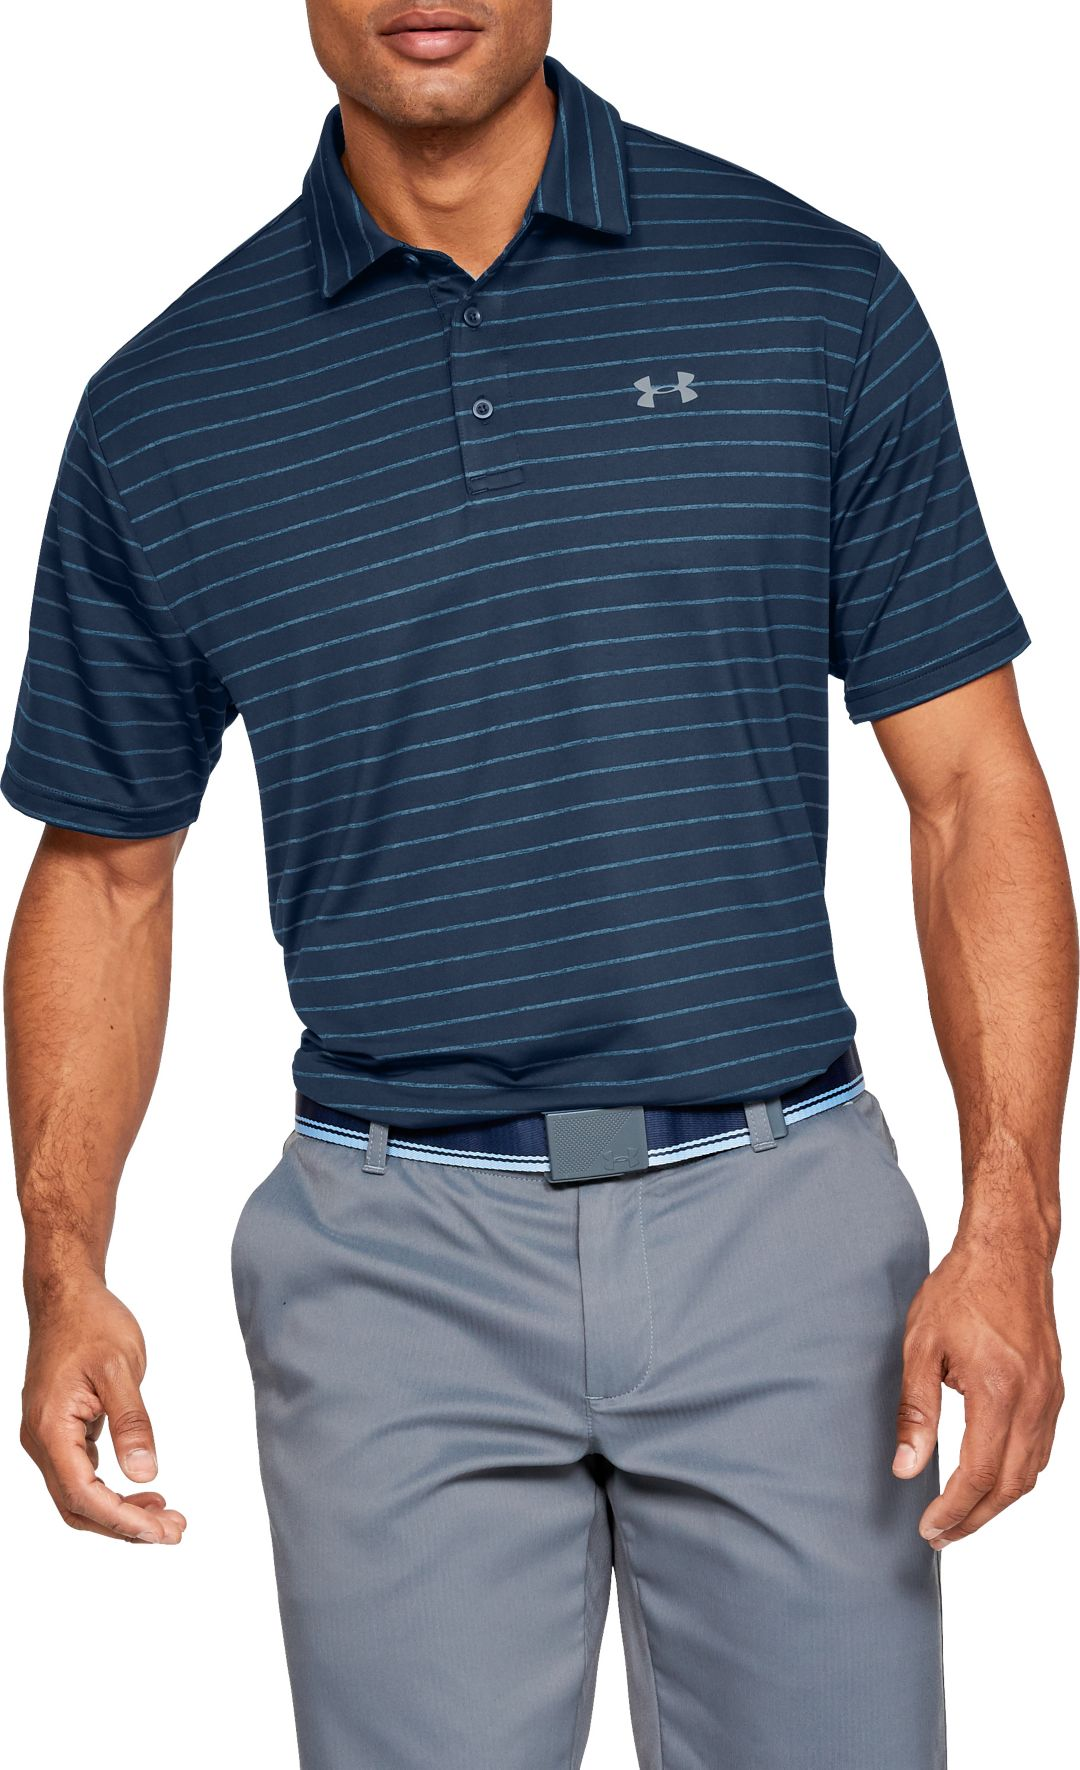 29dd1cfd5b Under Armour Men's Playoff 2.0 Tour Stripe Golf Polo